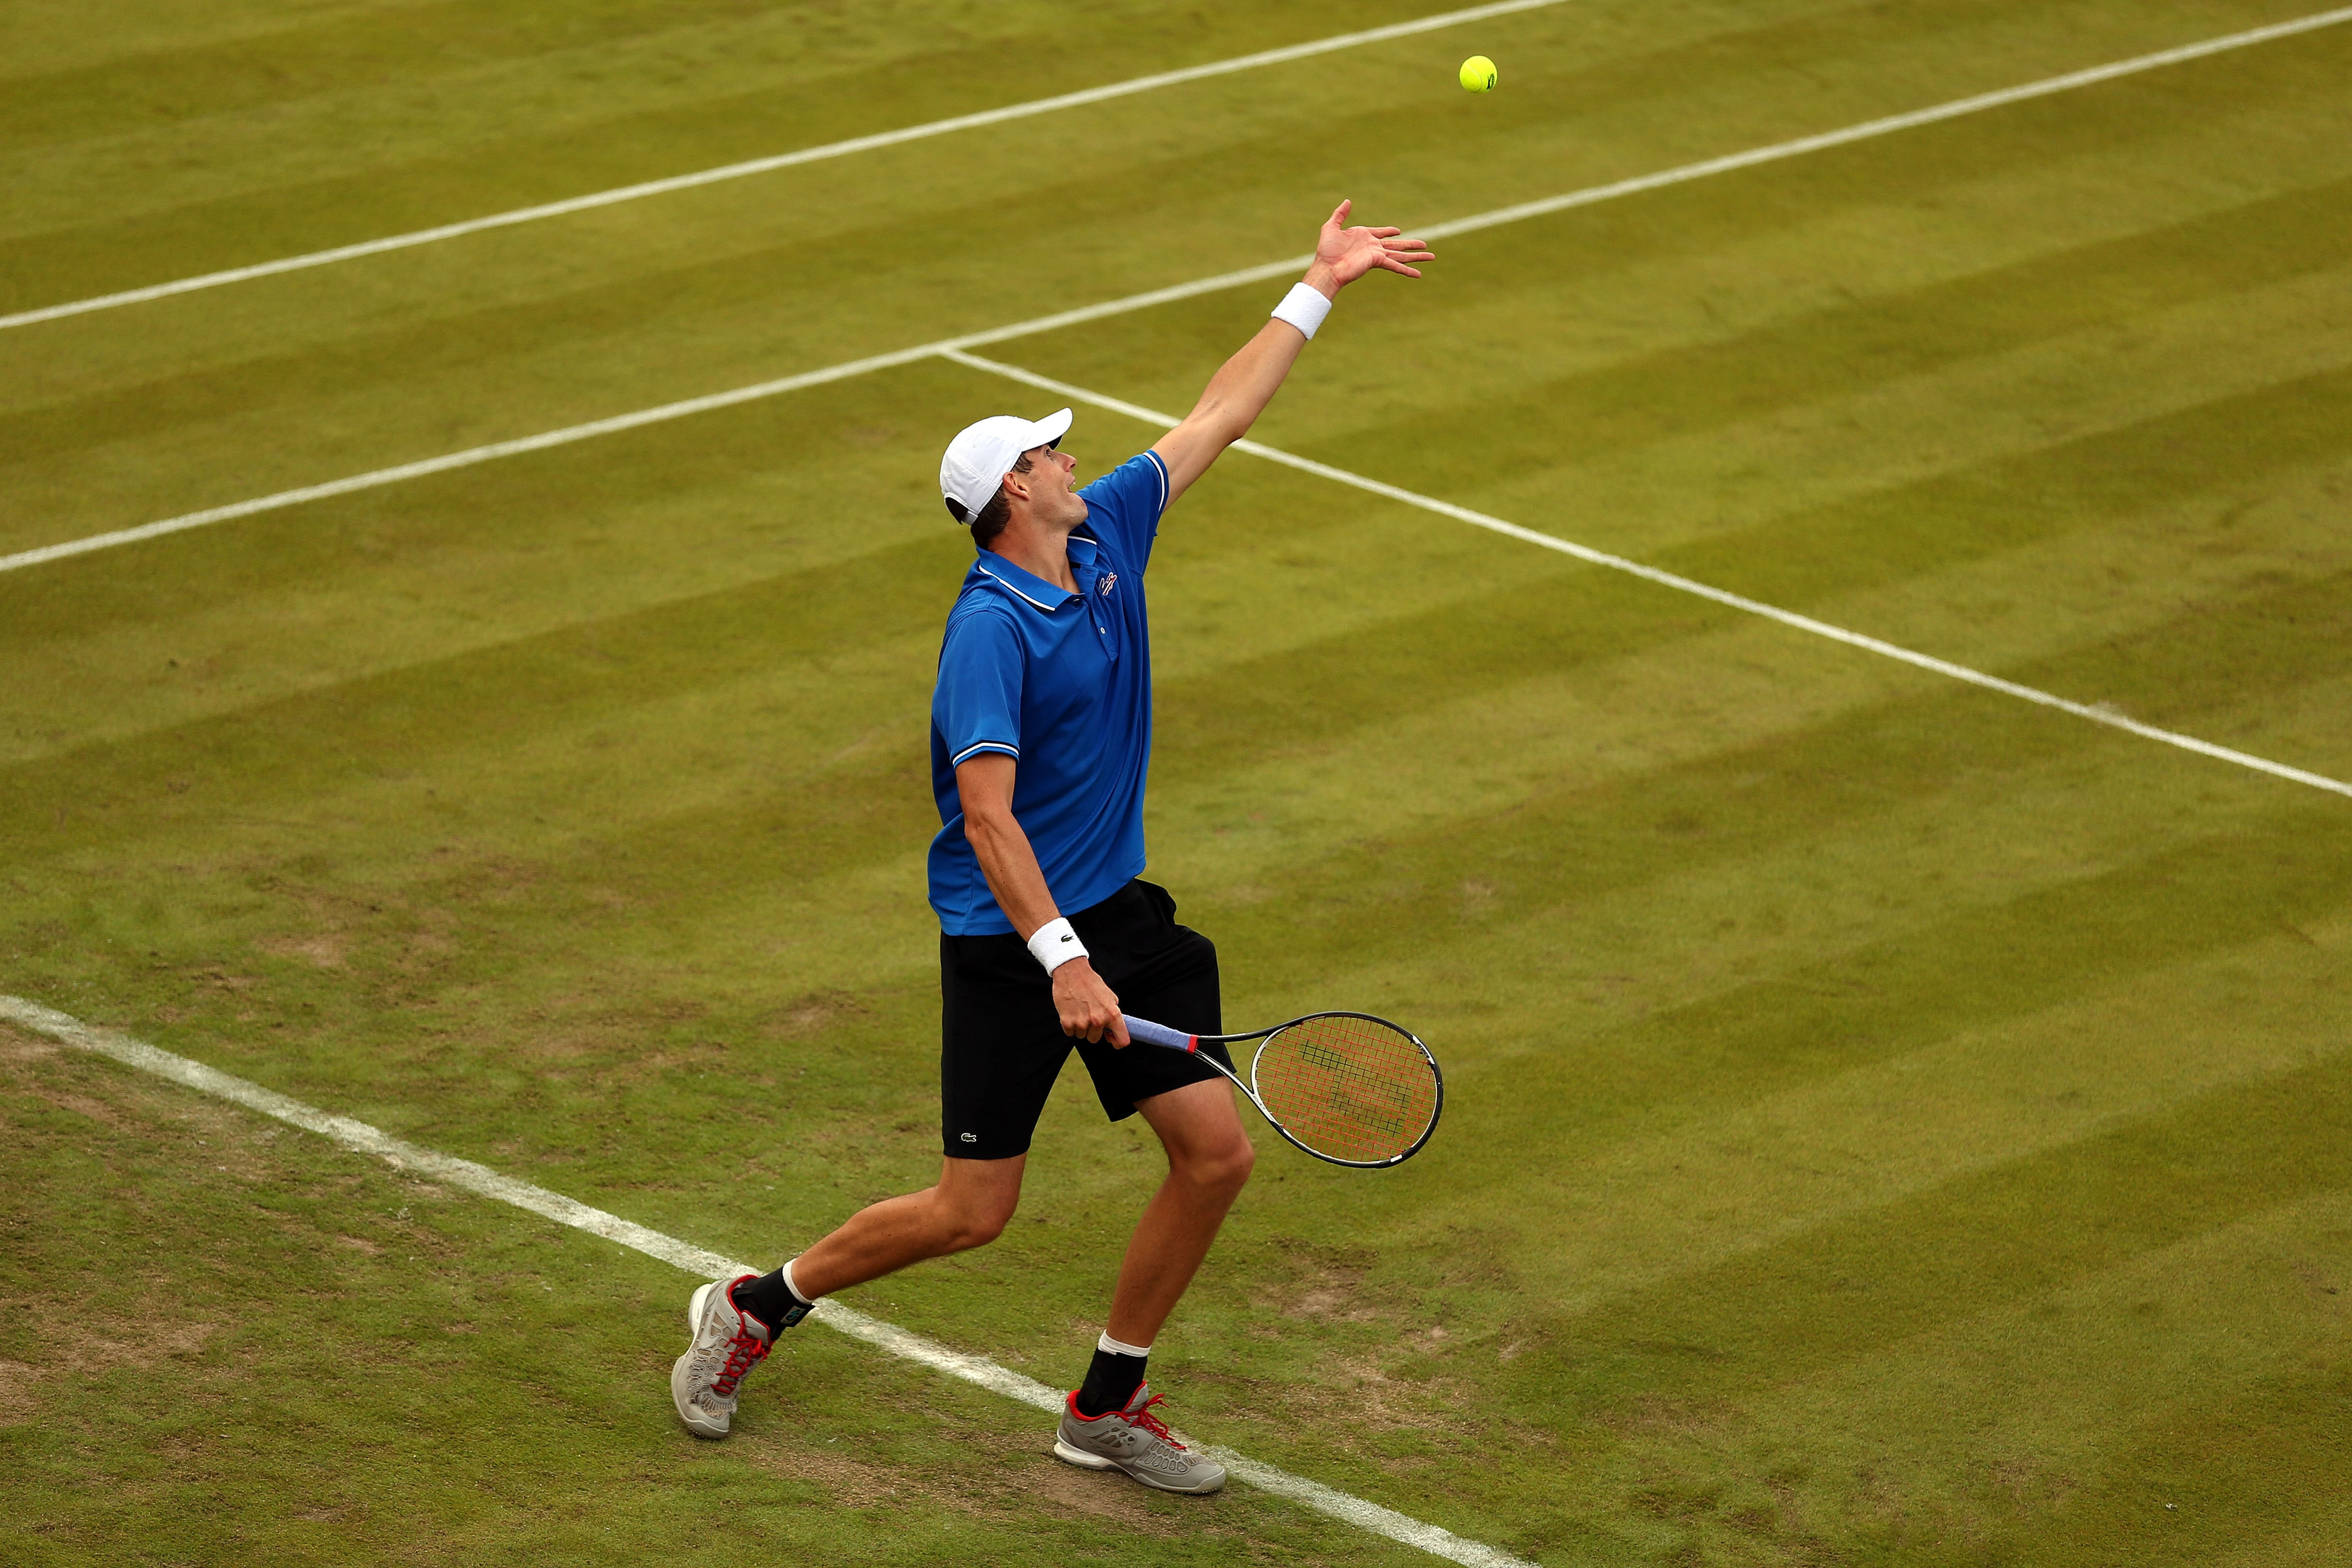 Georgia's John Isner (USA) advanced in straight sets in tennis singles action.